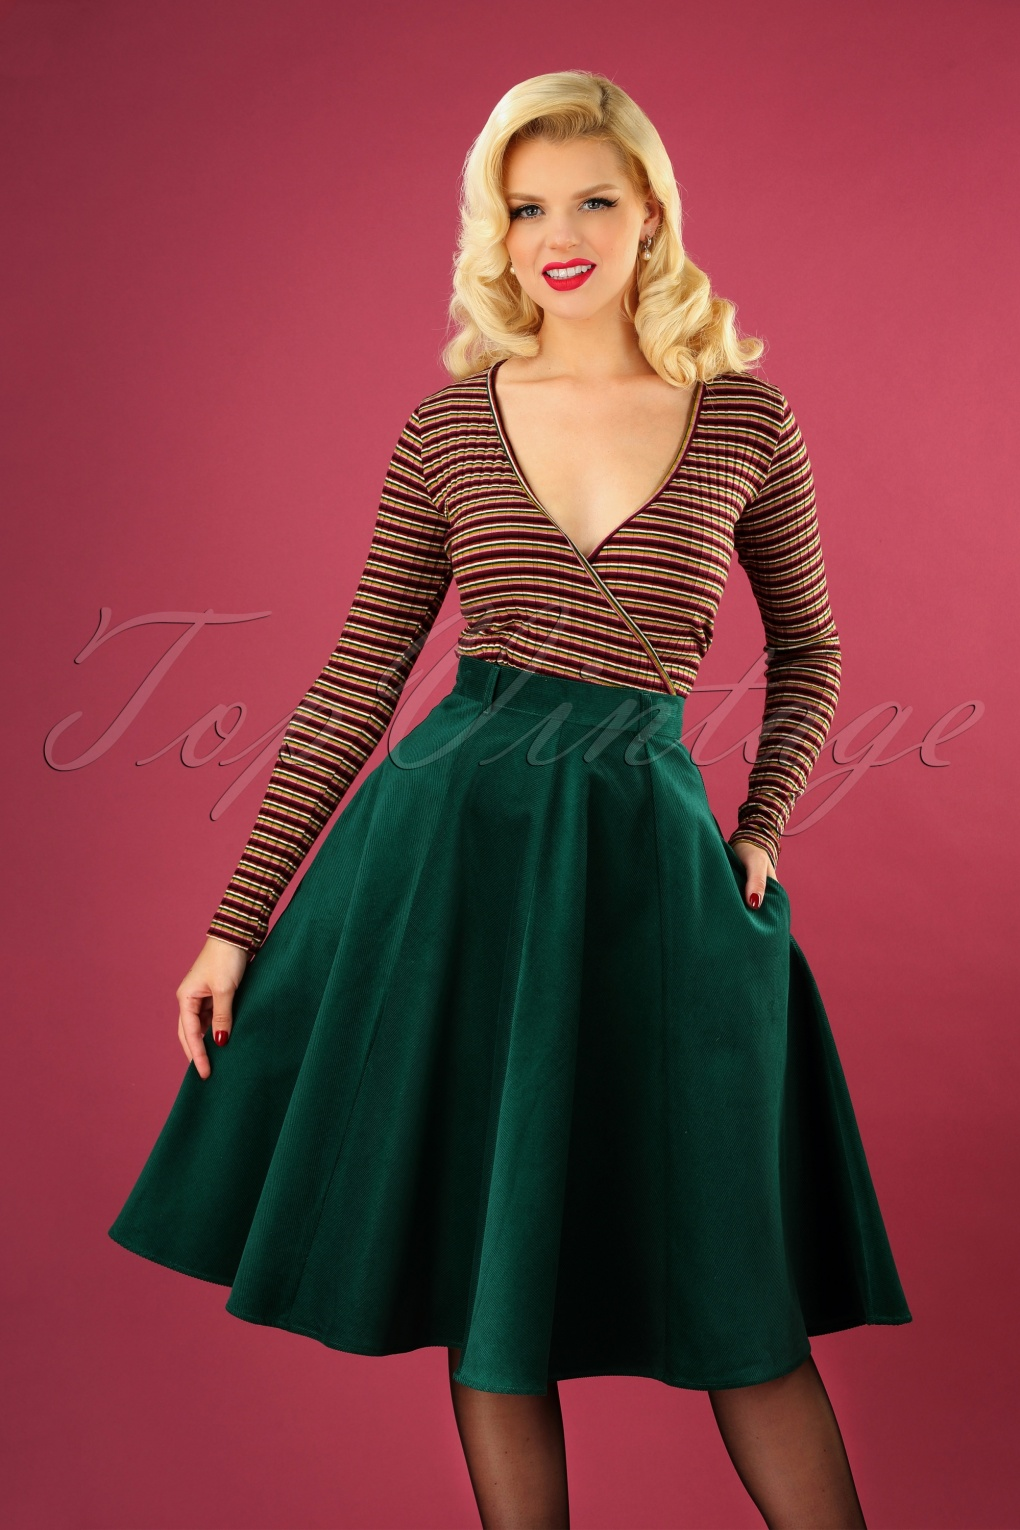 1940s Style Skirts- Vintage High Waisted Skirts 70s Jefferson Swing Skirt in Dark Green Corduroy £57.08 AT vintagedancer.com